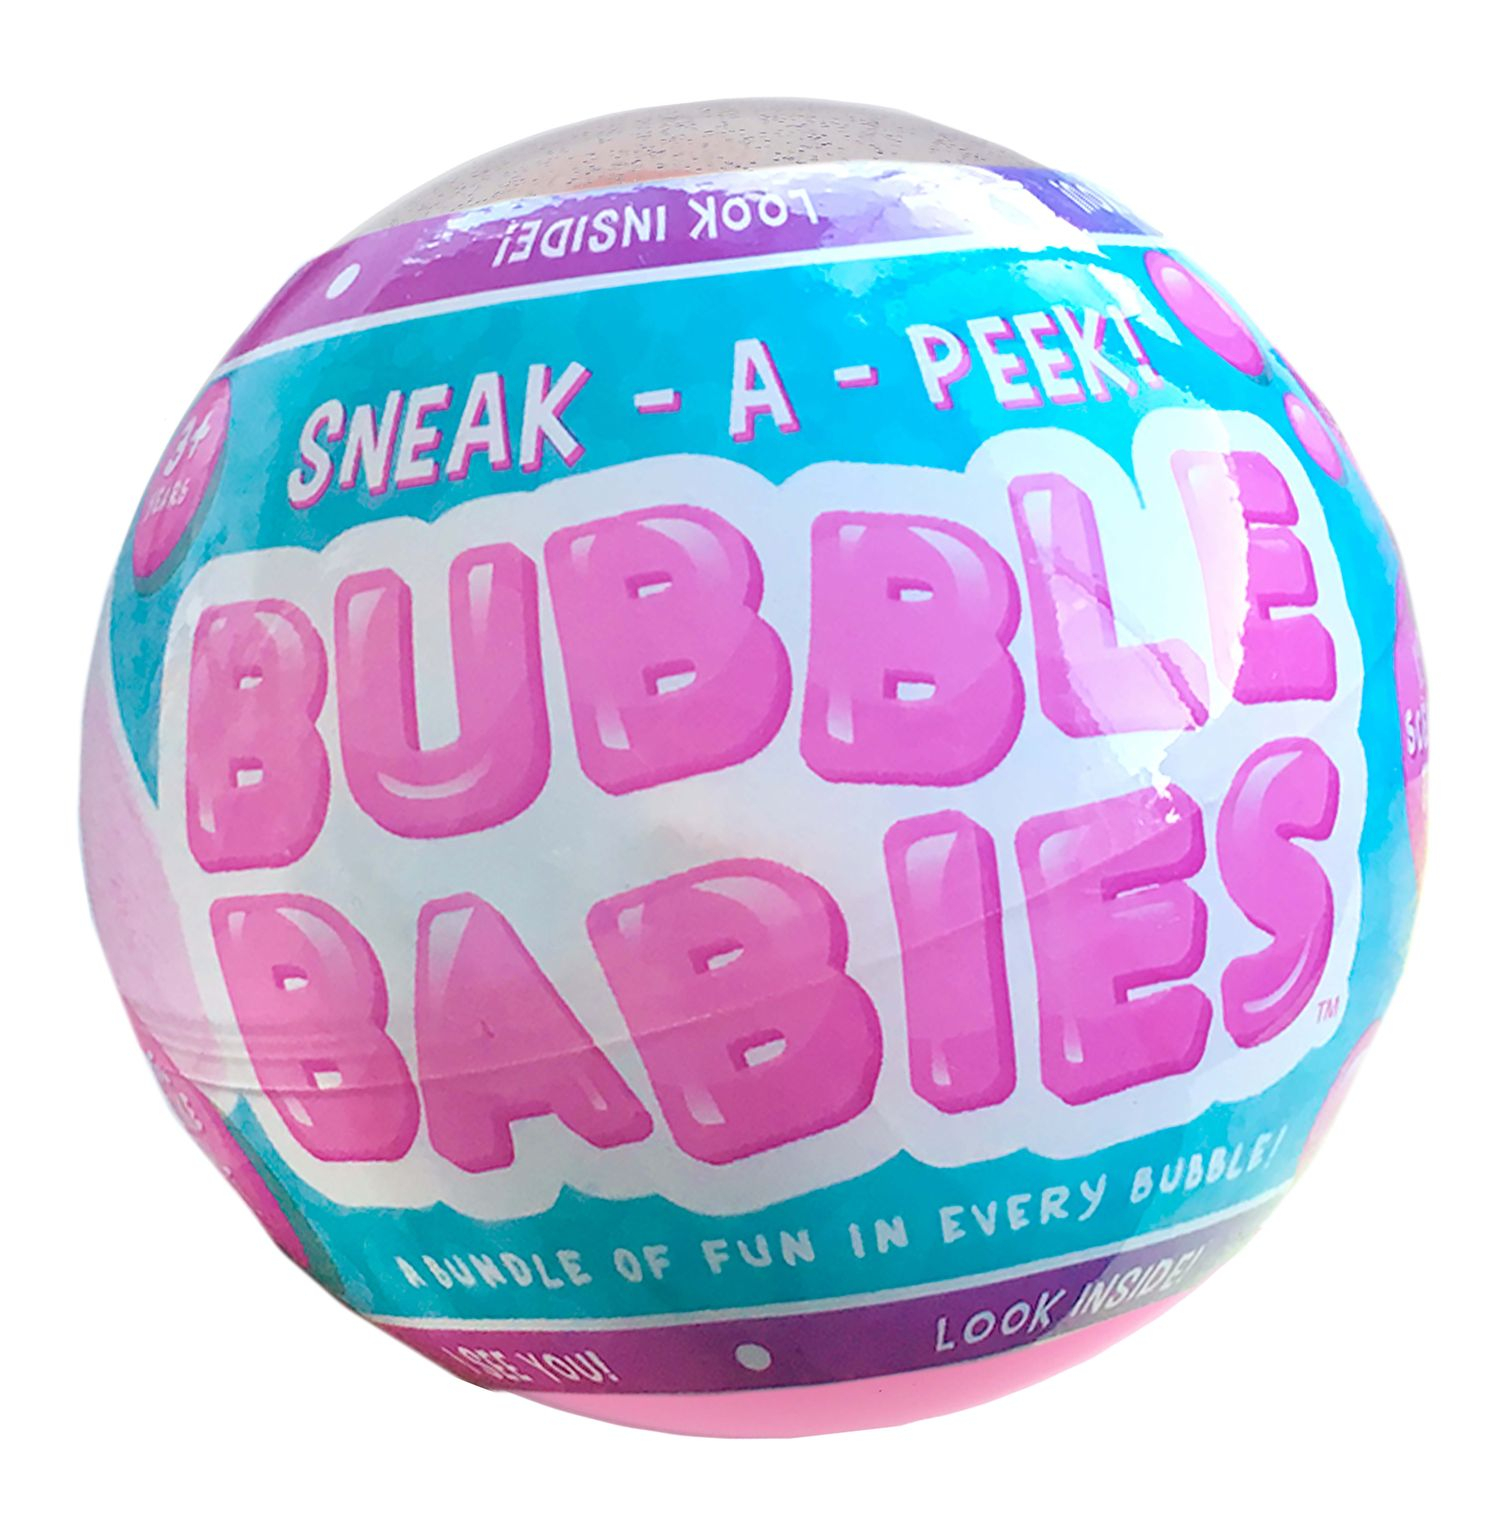 HUNTER Bubble babies hahmot